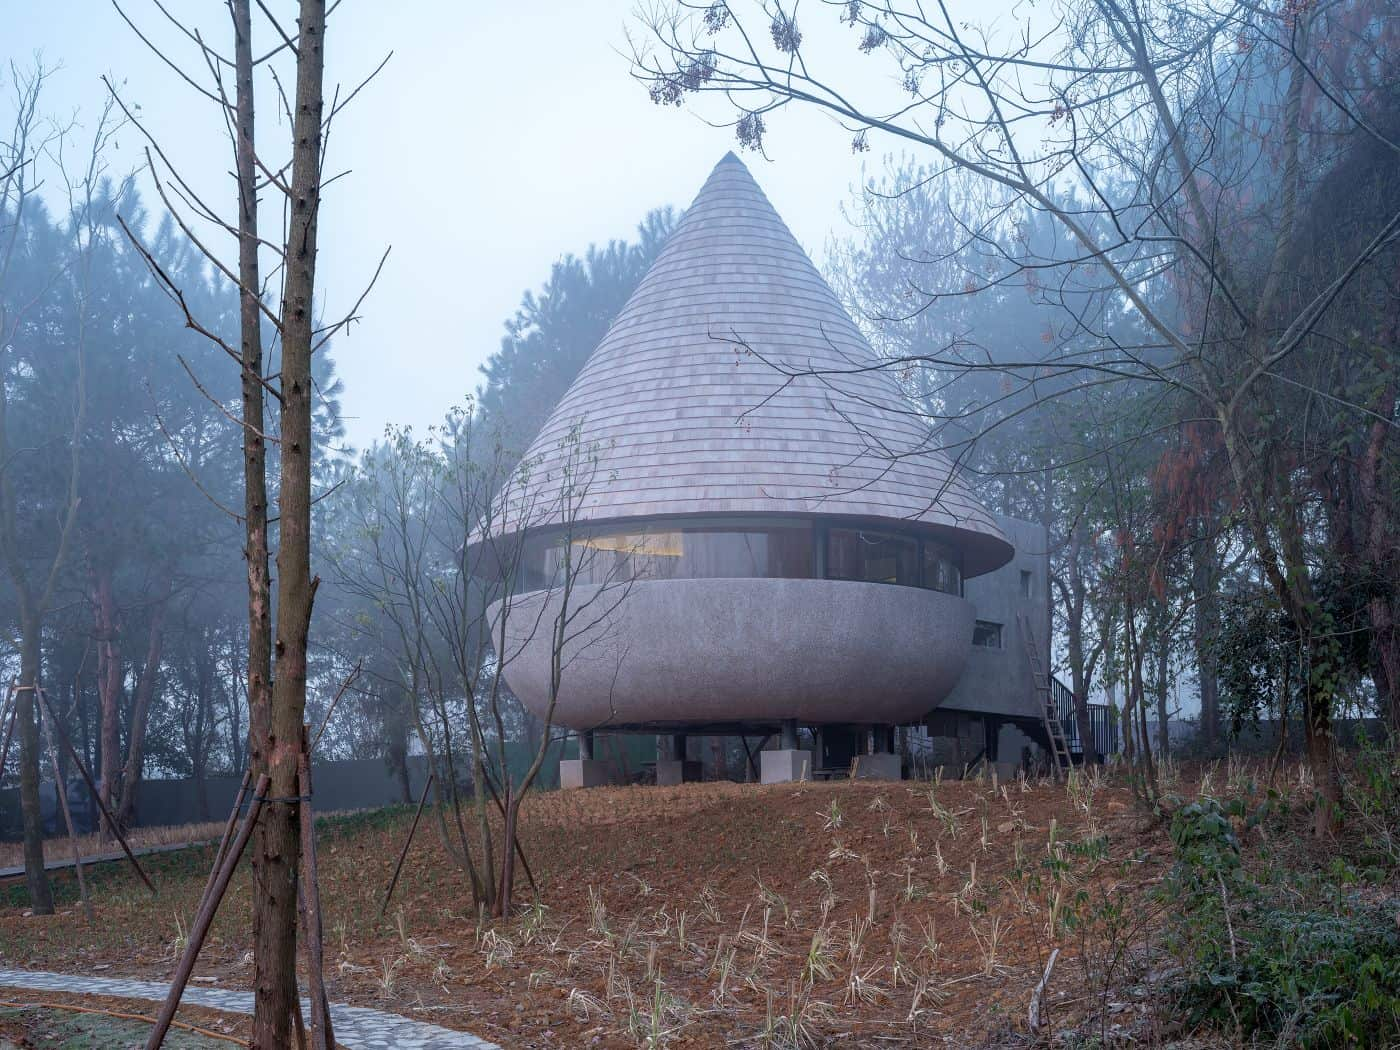 The Mushroom (A Wood House in the Forest) by ZJJZ